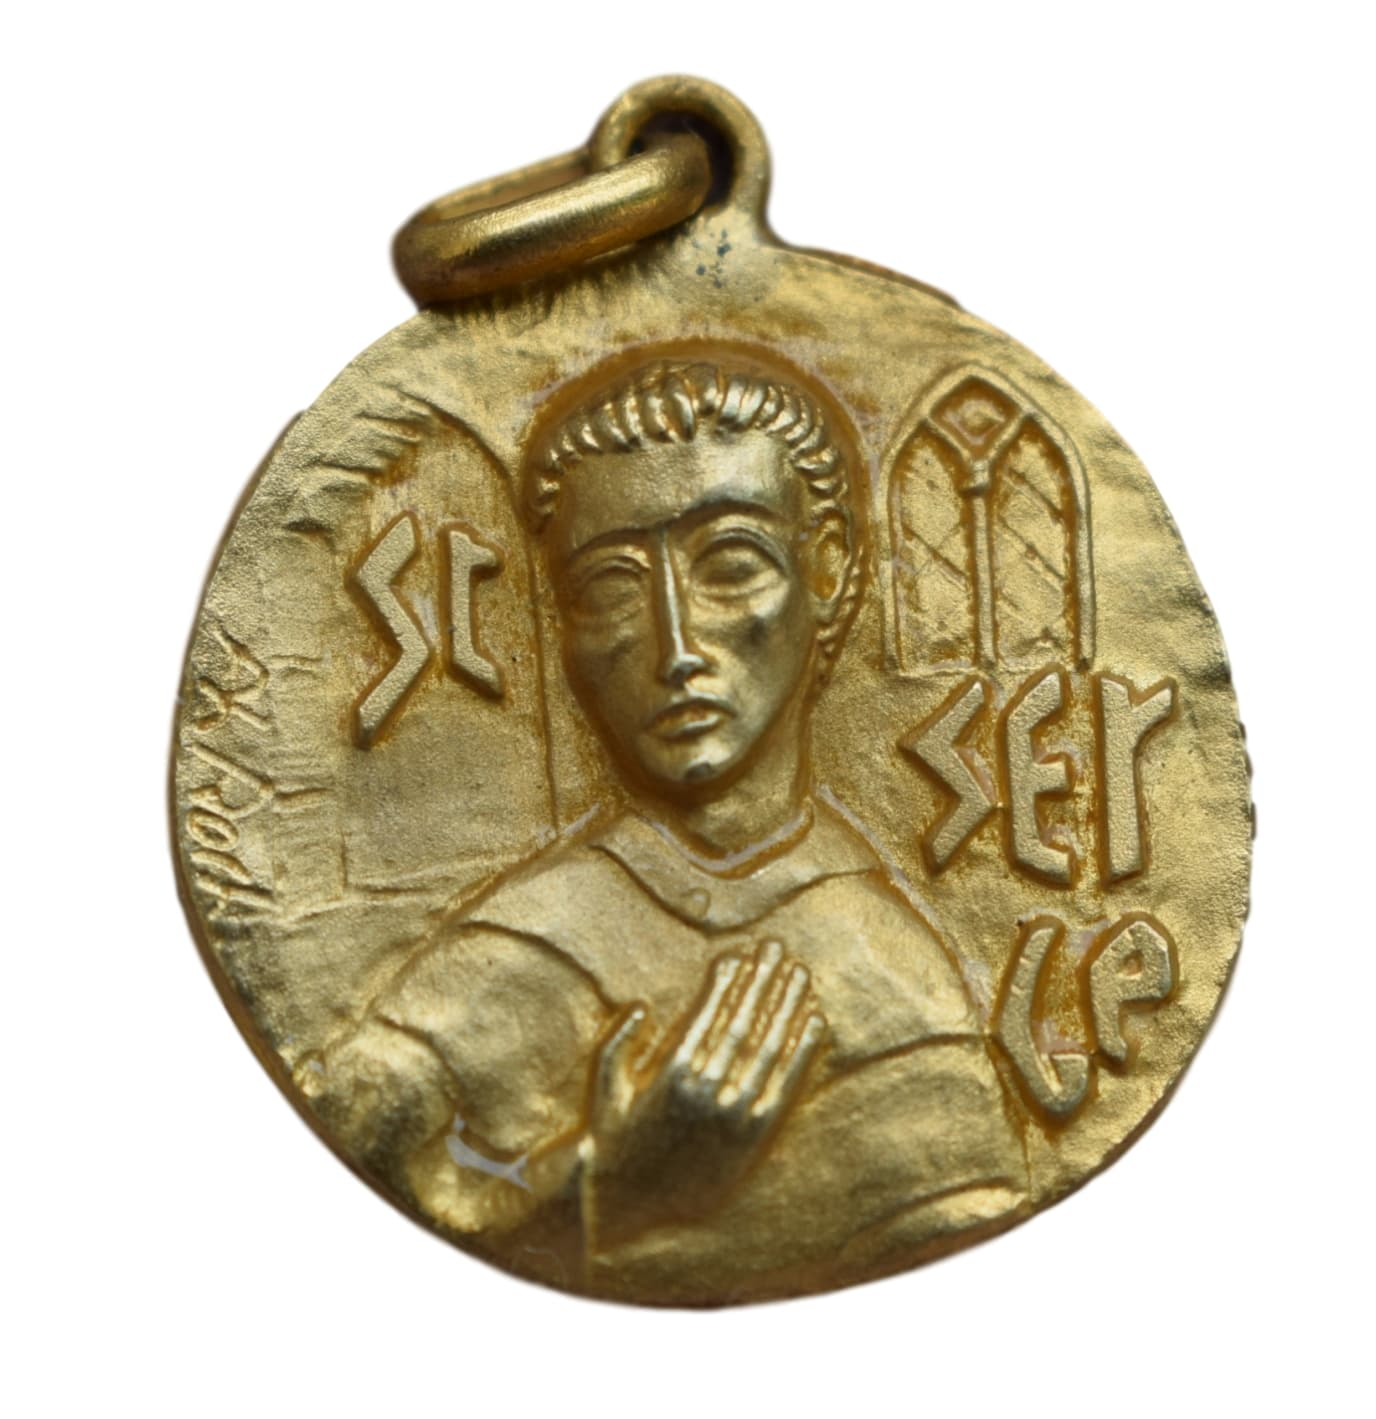 Orthodox Saint Serge Medal - French Religious Vintage Gold Medal Pendant Charm by Philippe Roch - Modernist Design Medal